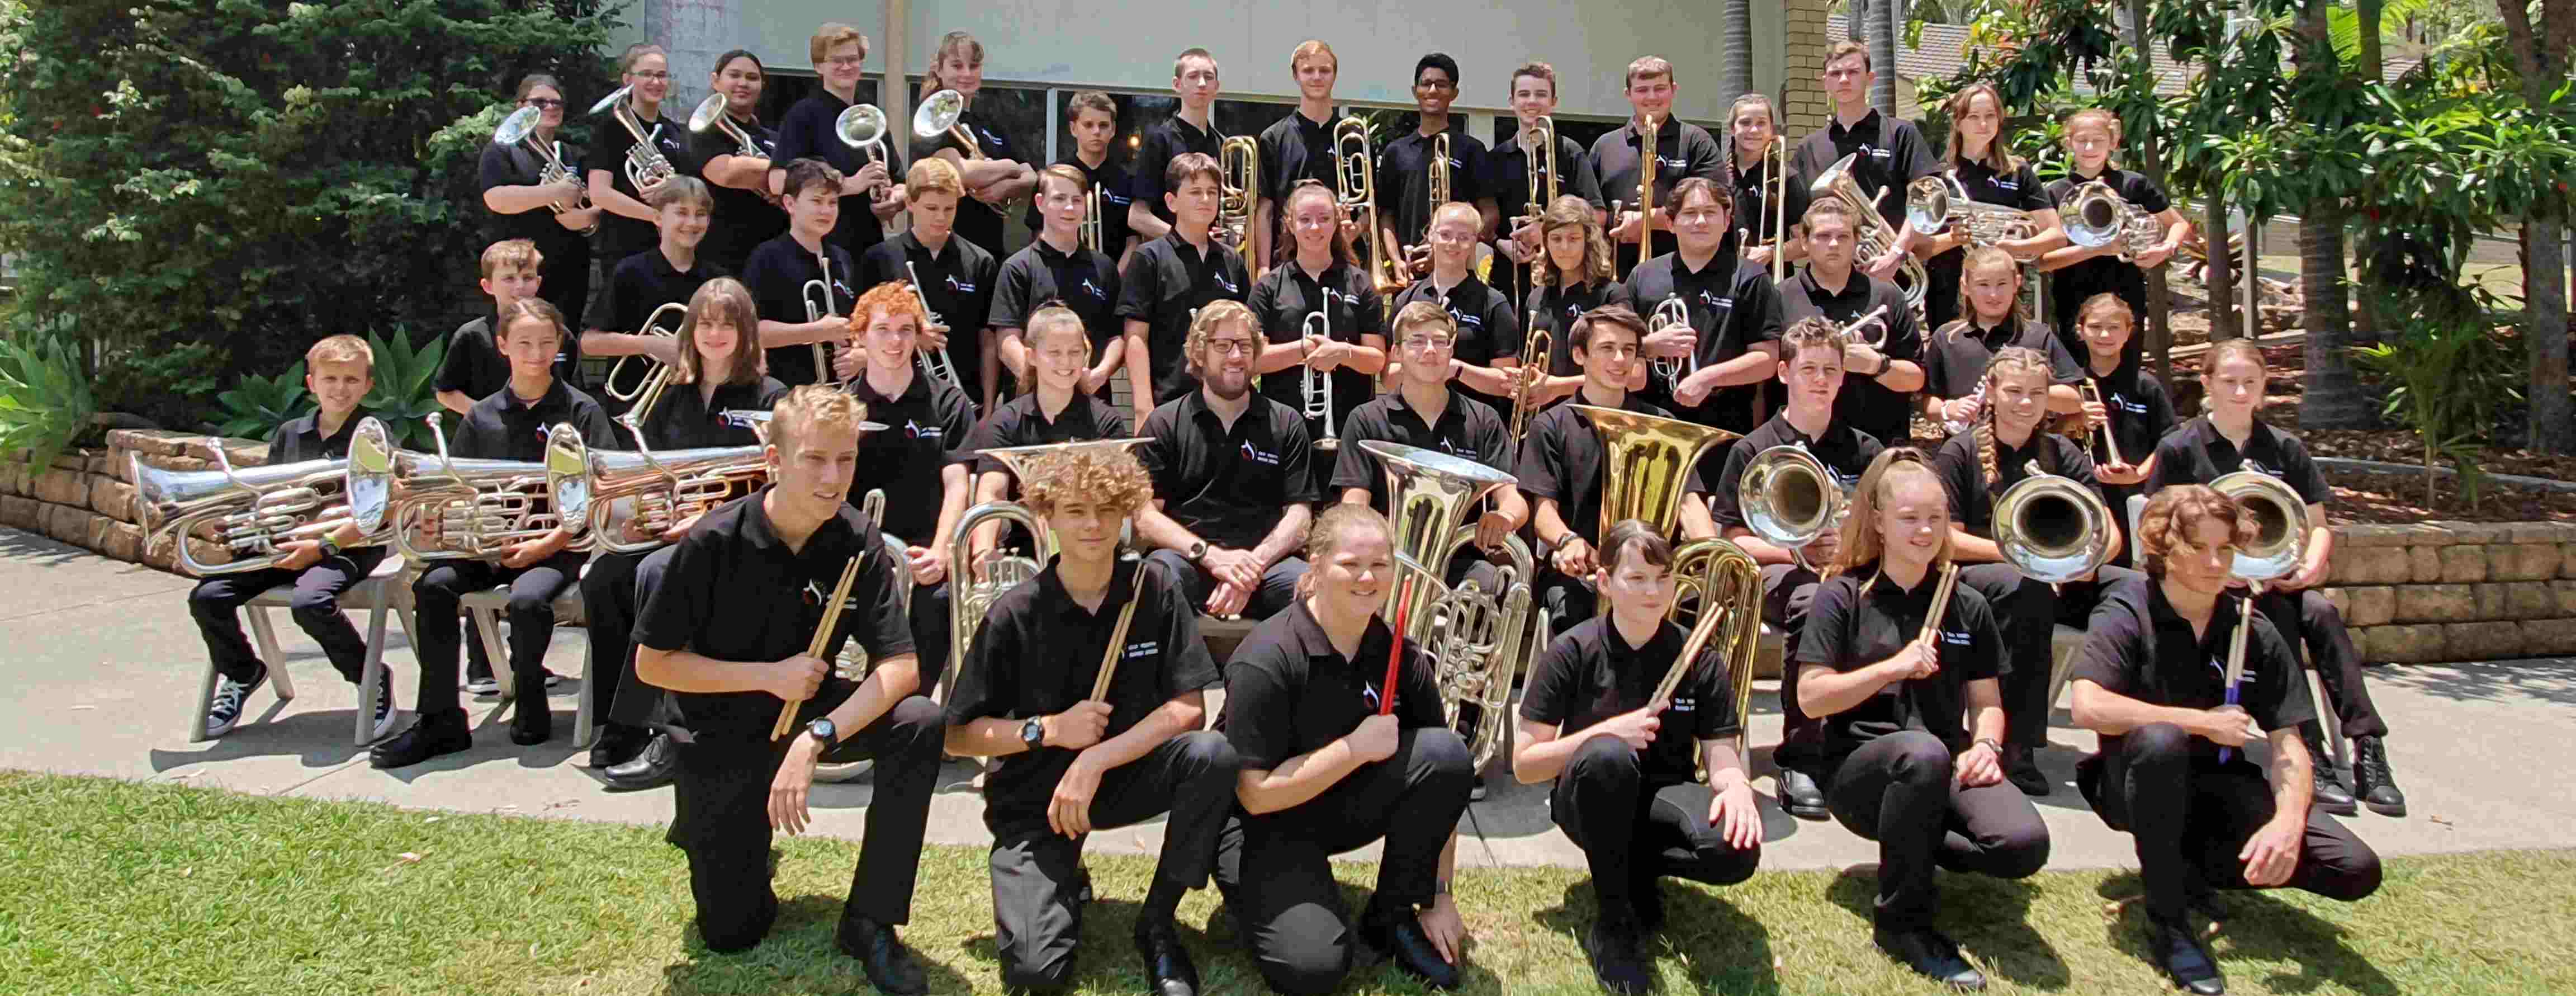 youth-band